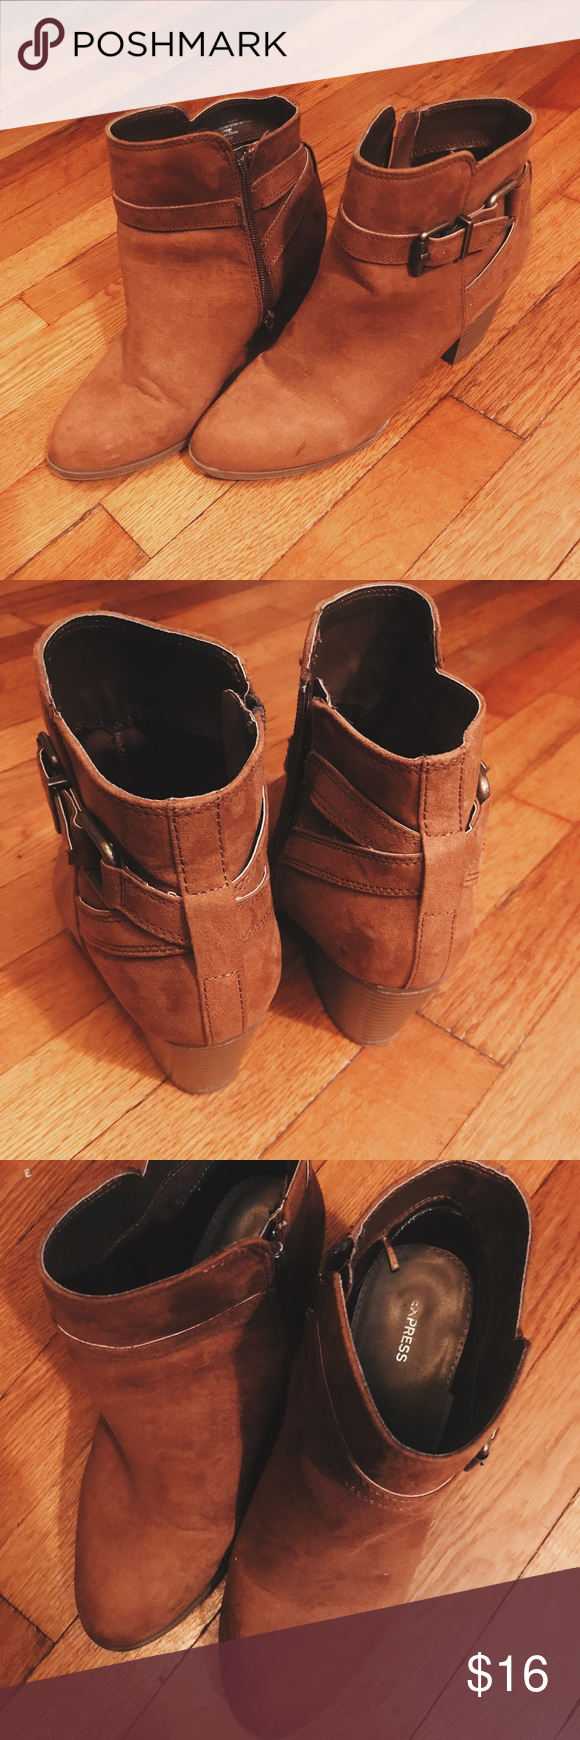 Heeled Booties Brown booties with 2 inch heel. Comfy and fashionable. Worn twice but in great condition. Express Shoes Ankle Boots & Booties